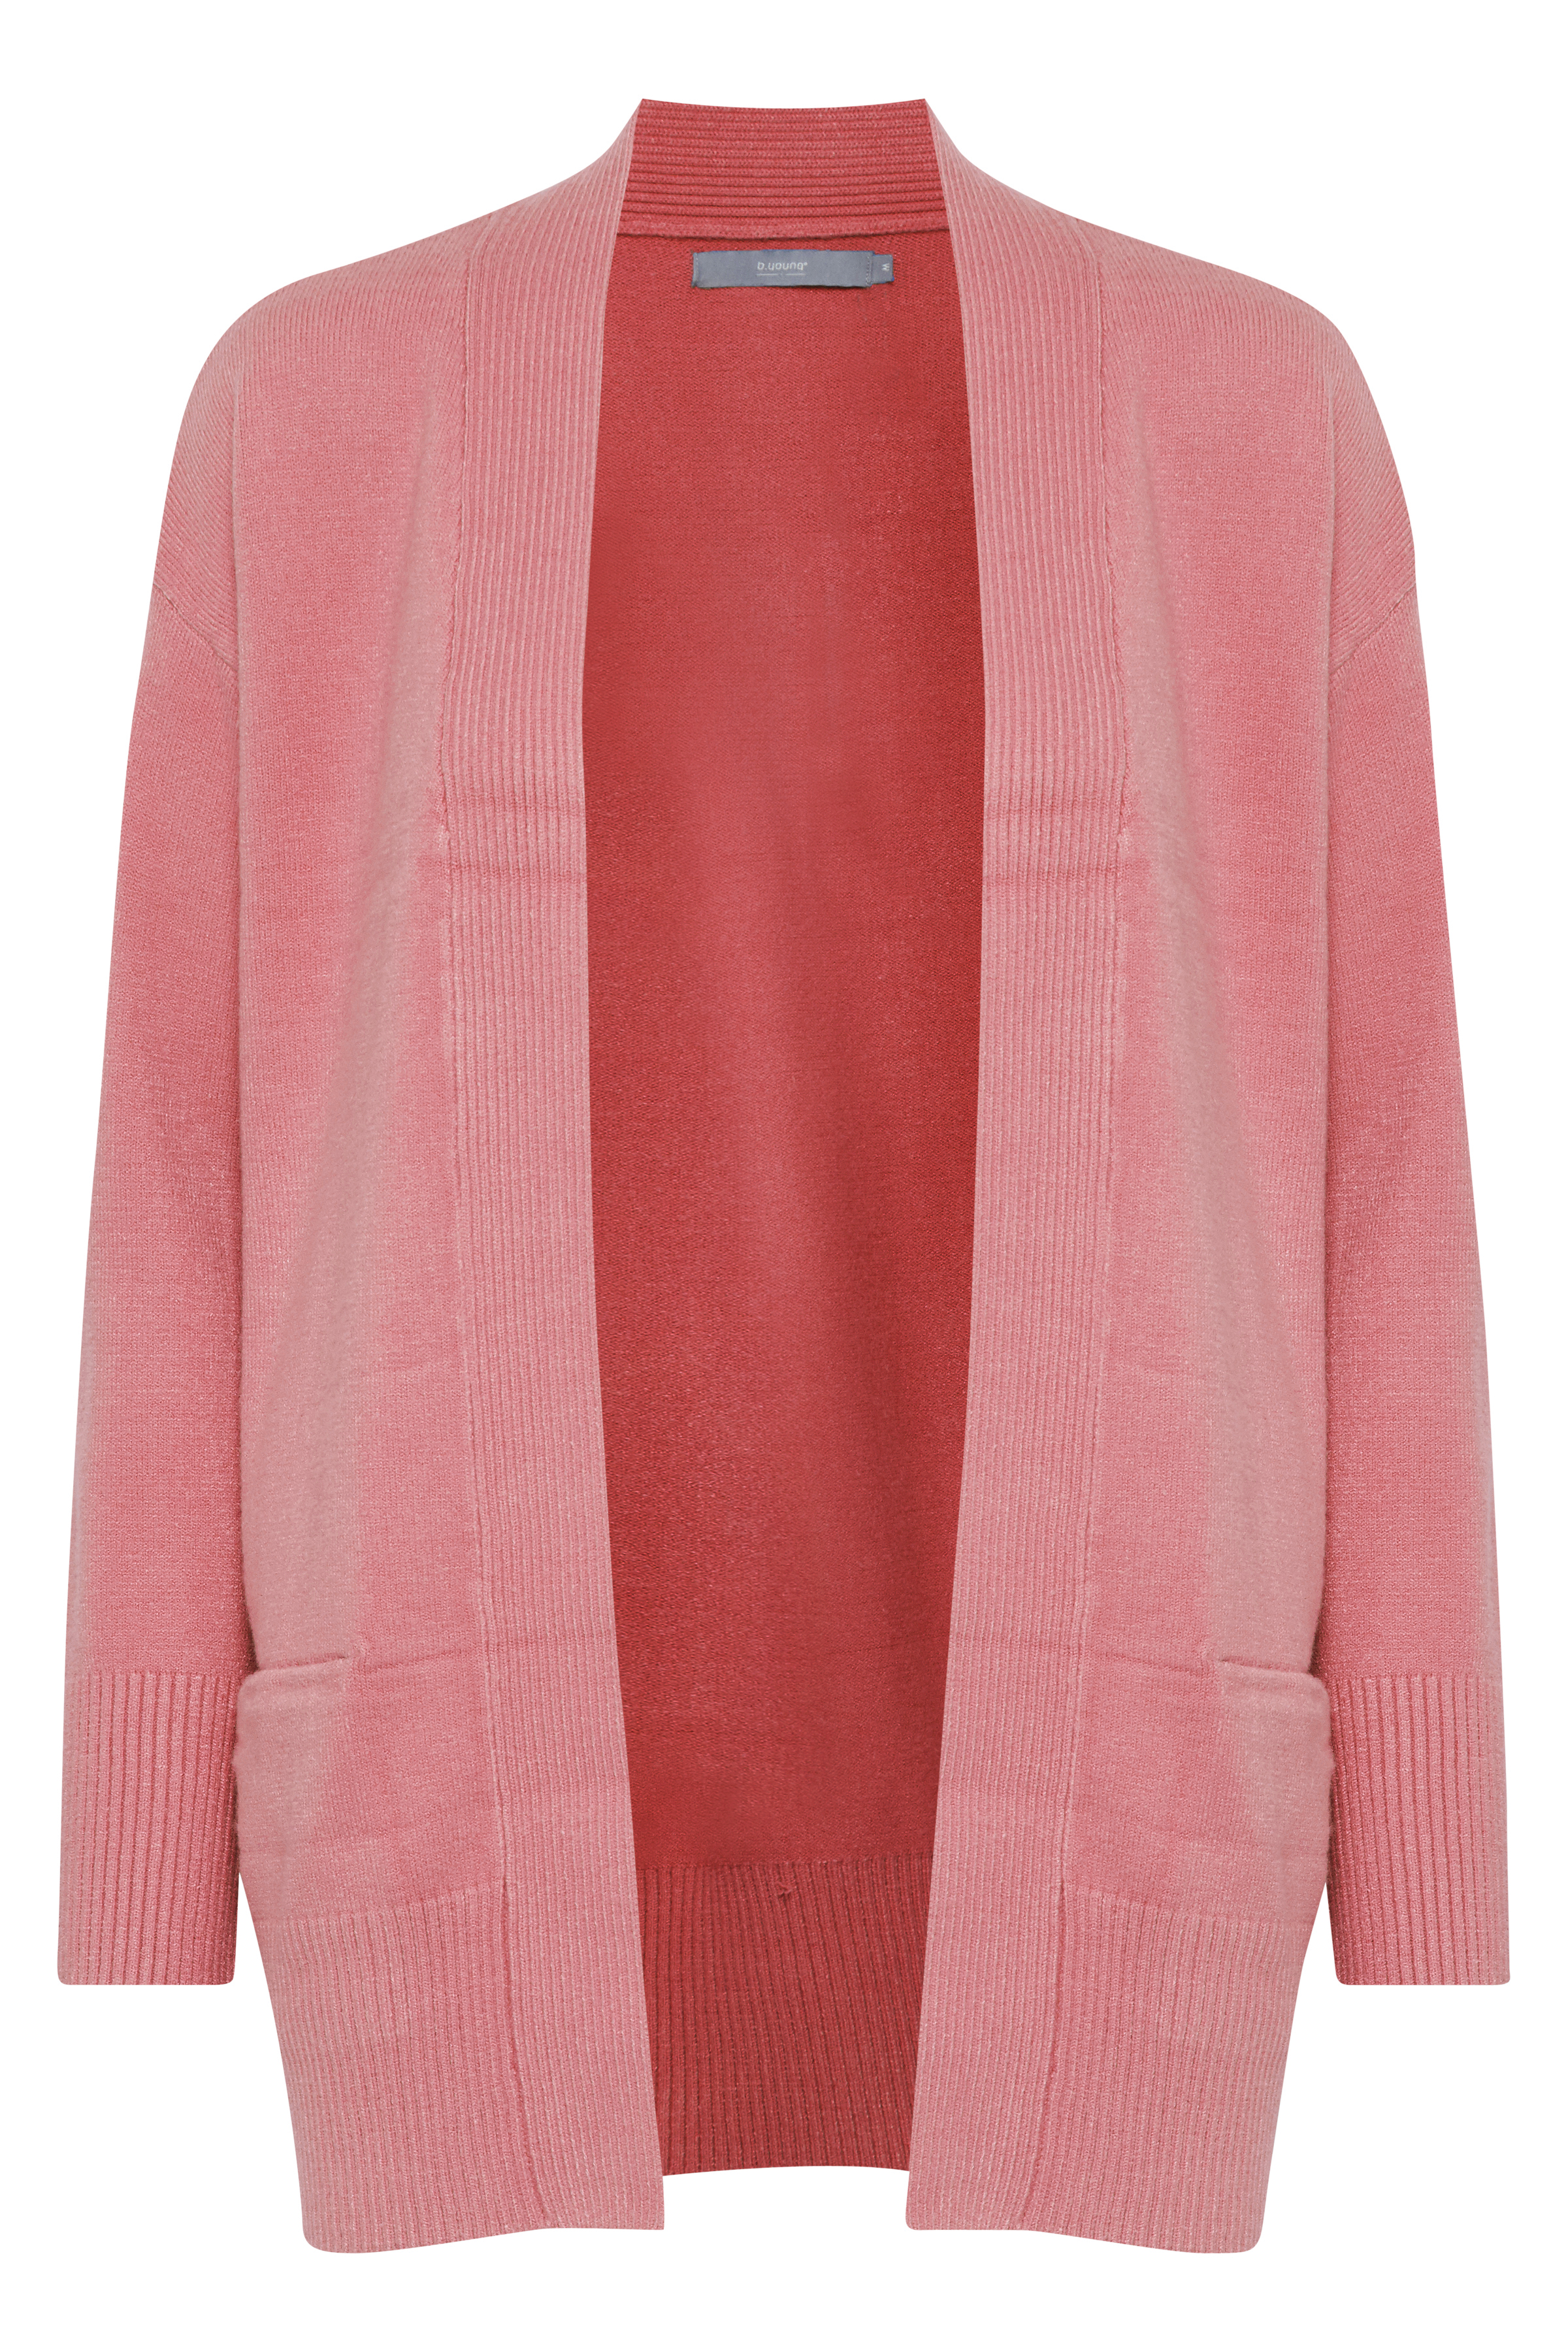 MEL. Sunkist Coral Knitted cardigan from b.young – Buy MEL. Sunkist Coral Knitted cardigan from size S-XXL here